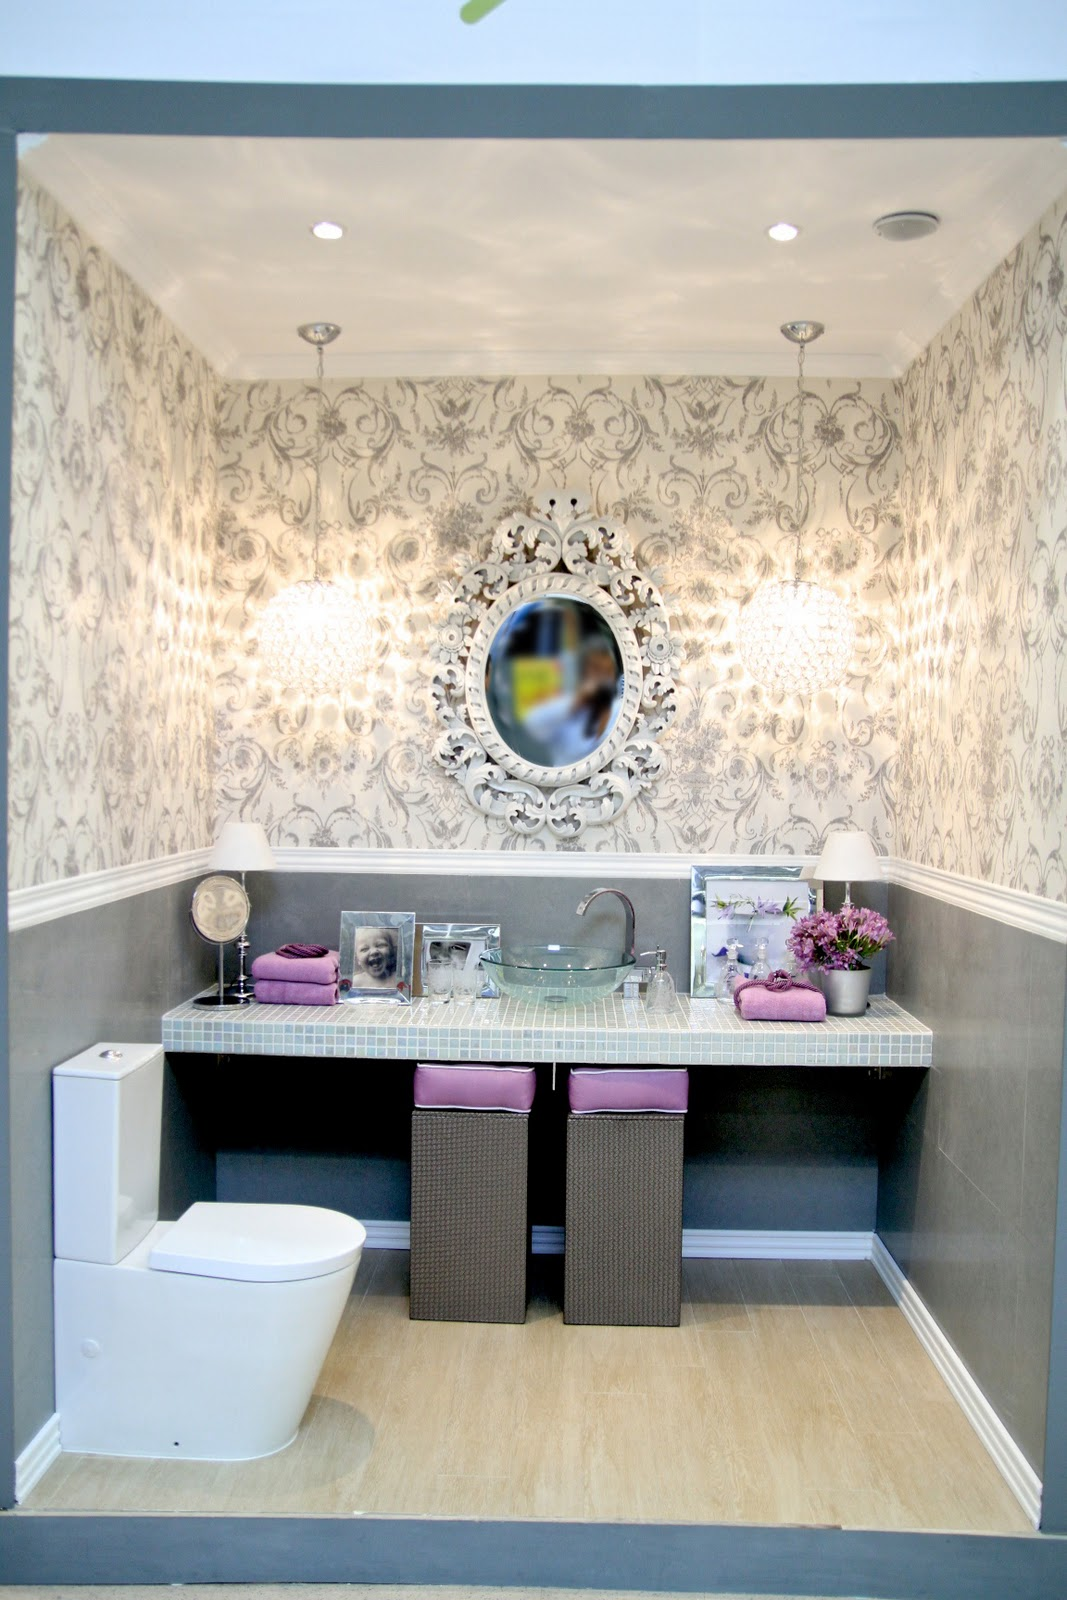 Celebrity Homes: Bathroom Projects by Ana Antunes at Leroy Merlin 5/6 #806C4B 1067x1600 Acessorios Banheiro Leroy Merlin